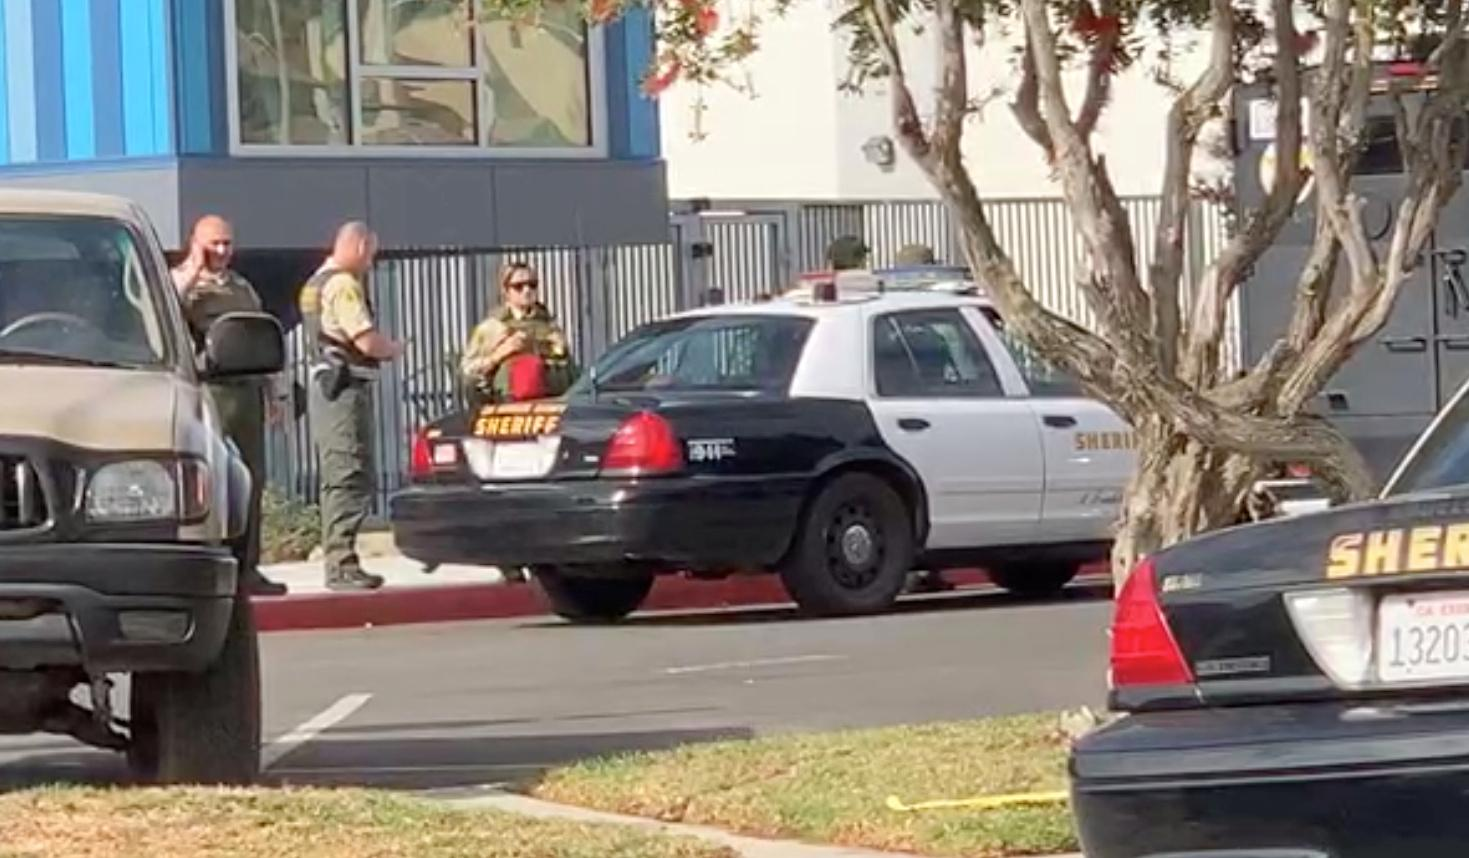 On 16th birthday, California student opens fire at his high school,...